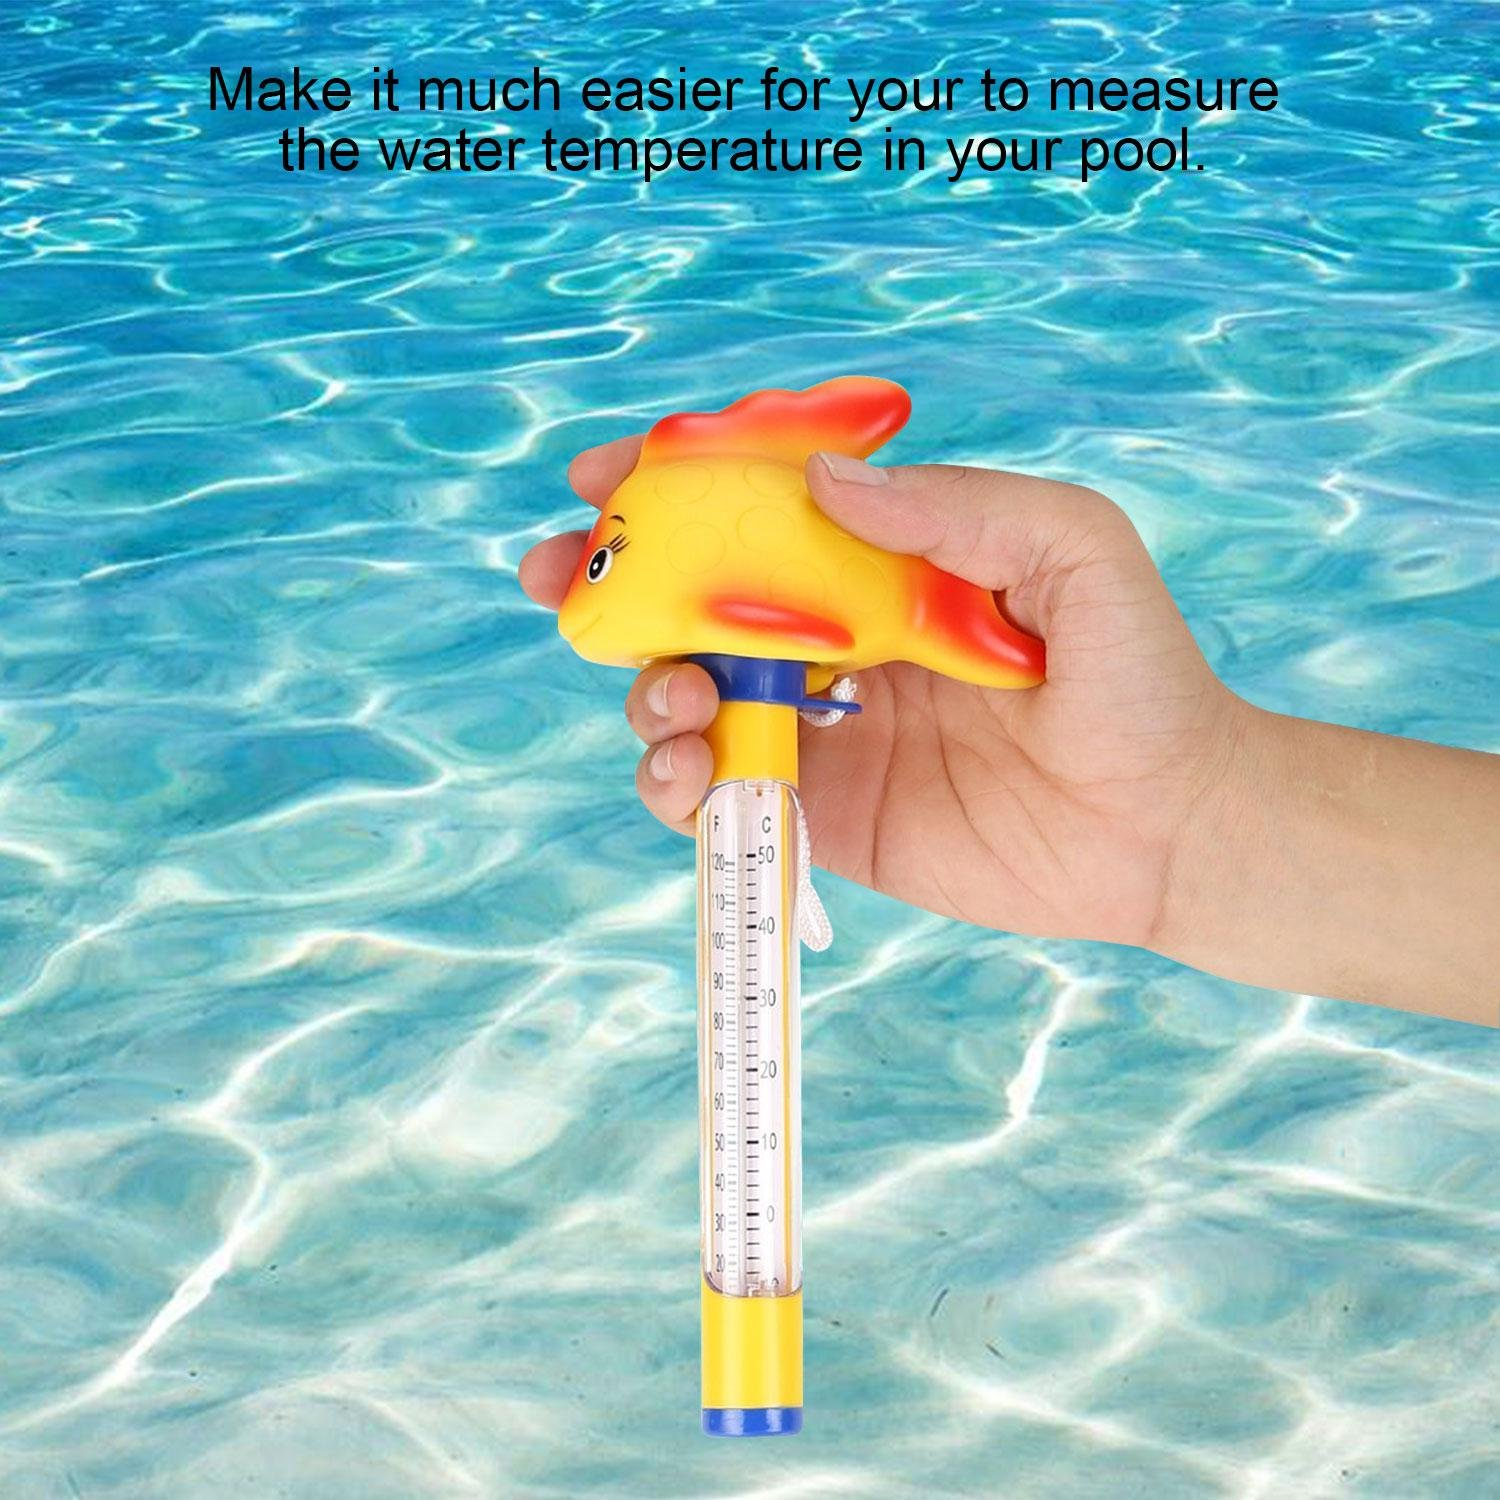 Whirlpool Whirlpool und Aquarien Goldfisch Leegoal Floating Pool Thermometer schwimmendes Thermometer Niedliche Tiere f/ür Outdoor//Indoor Schwimmbad Spa